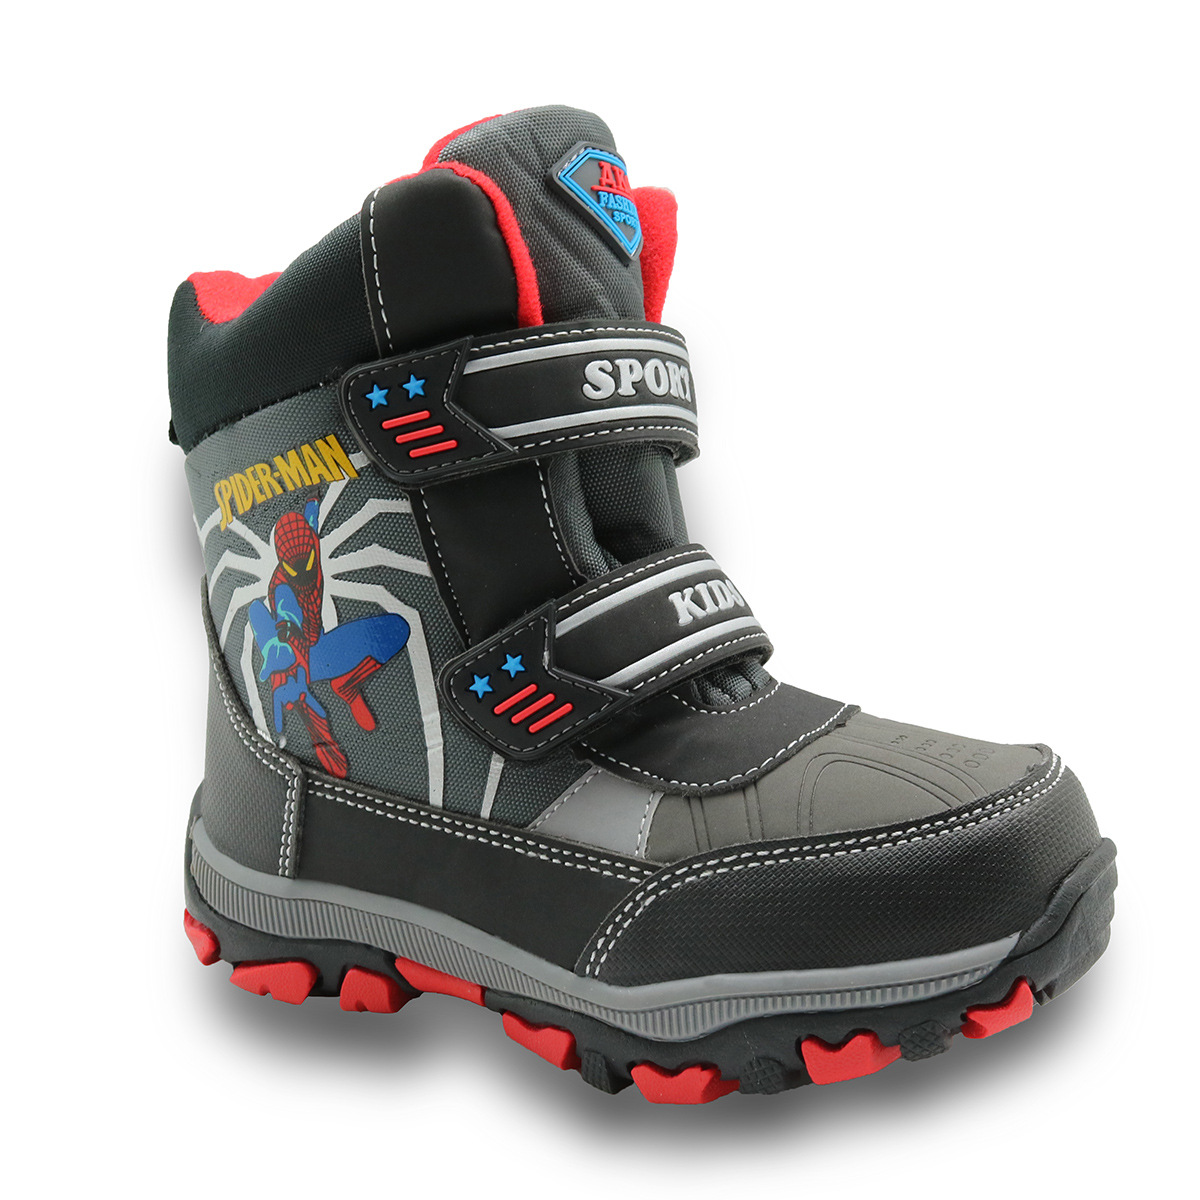 New 2017 Children Shoes Fashion Baby Boys Snow Boots With Thick Plush Waterproof non-slip Sports For Winter Size 27-32 2016 new winter kids snow boots children warm thick waterproof martin boots girls boys fashion soft buckle shoes baby snow boots